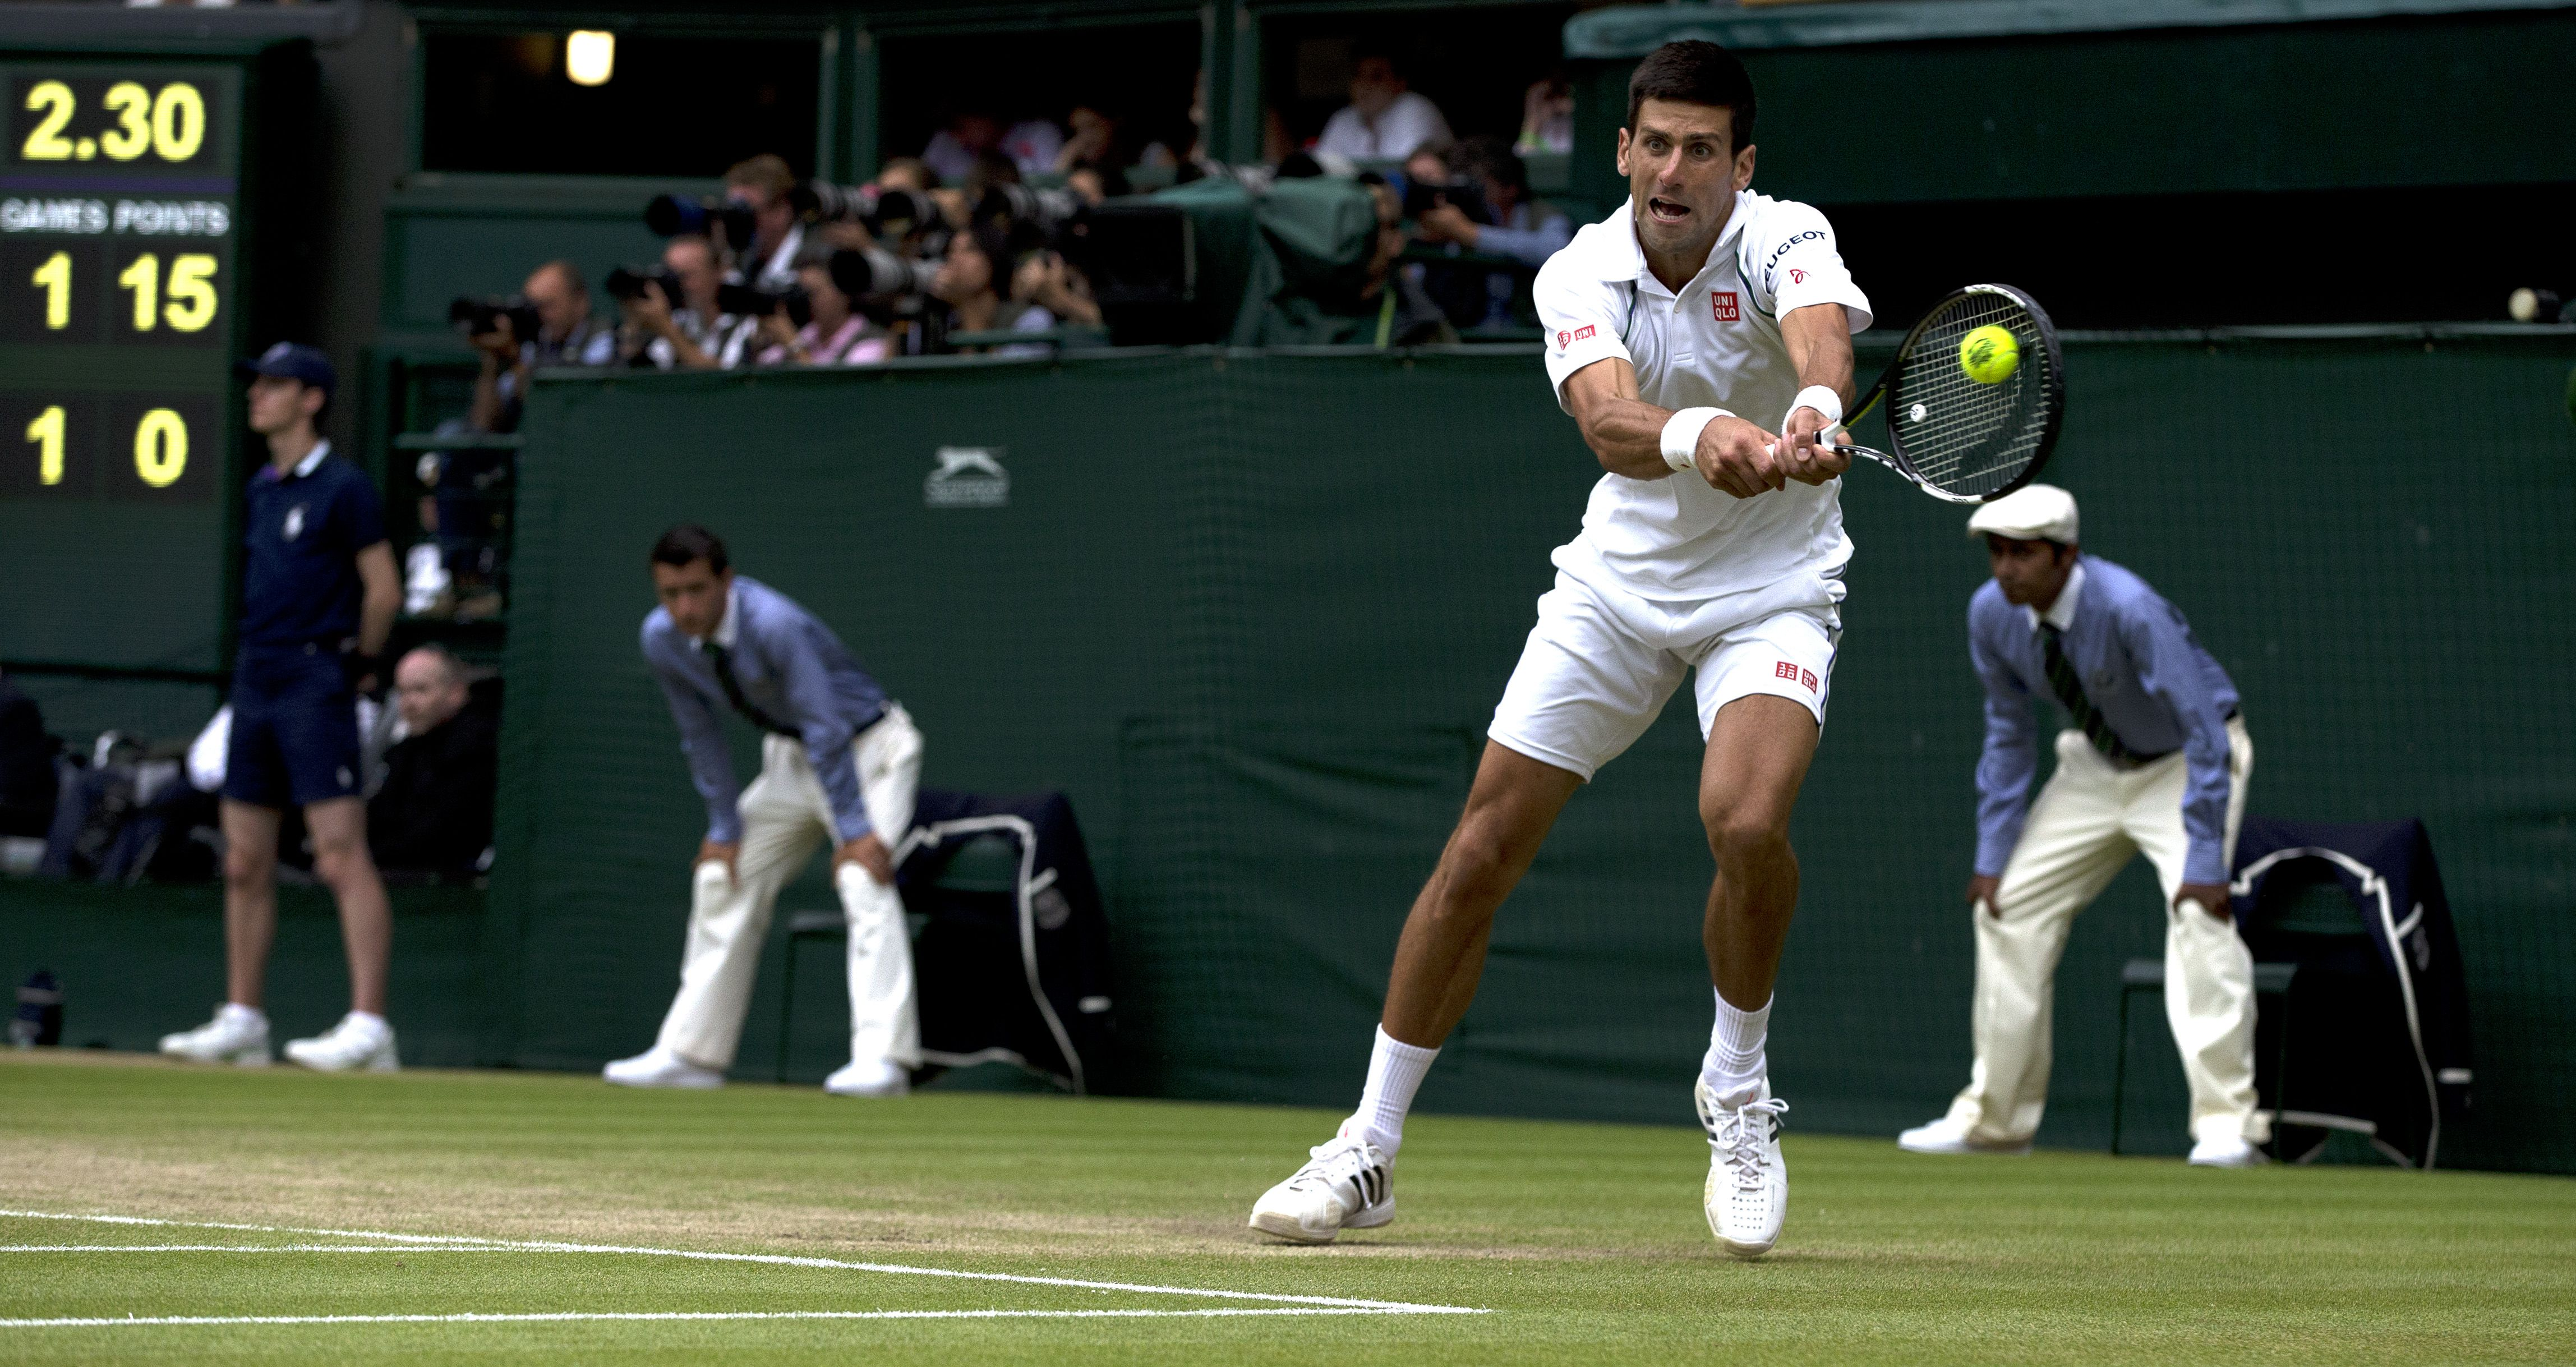 Novak Djokovic proved why he is the world's top player in